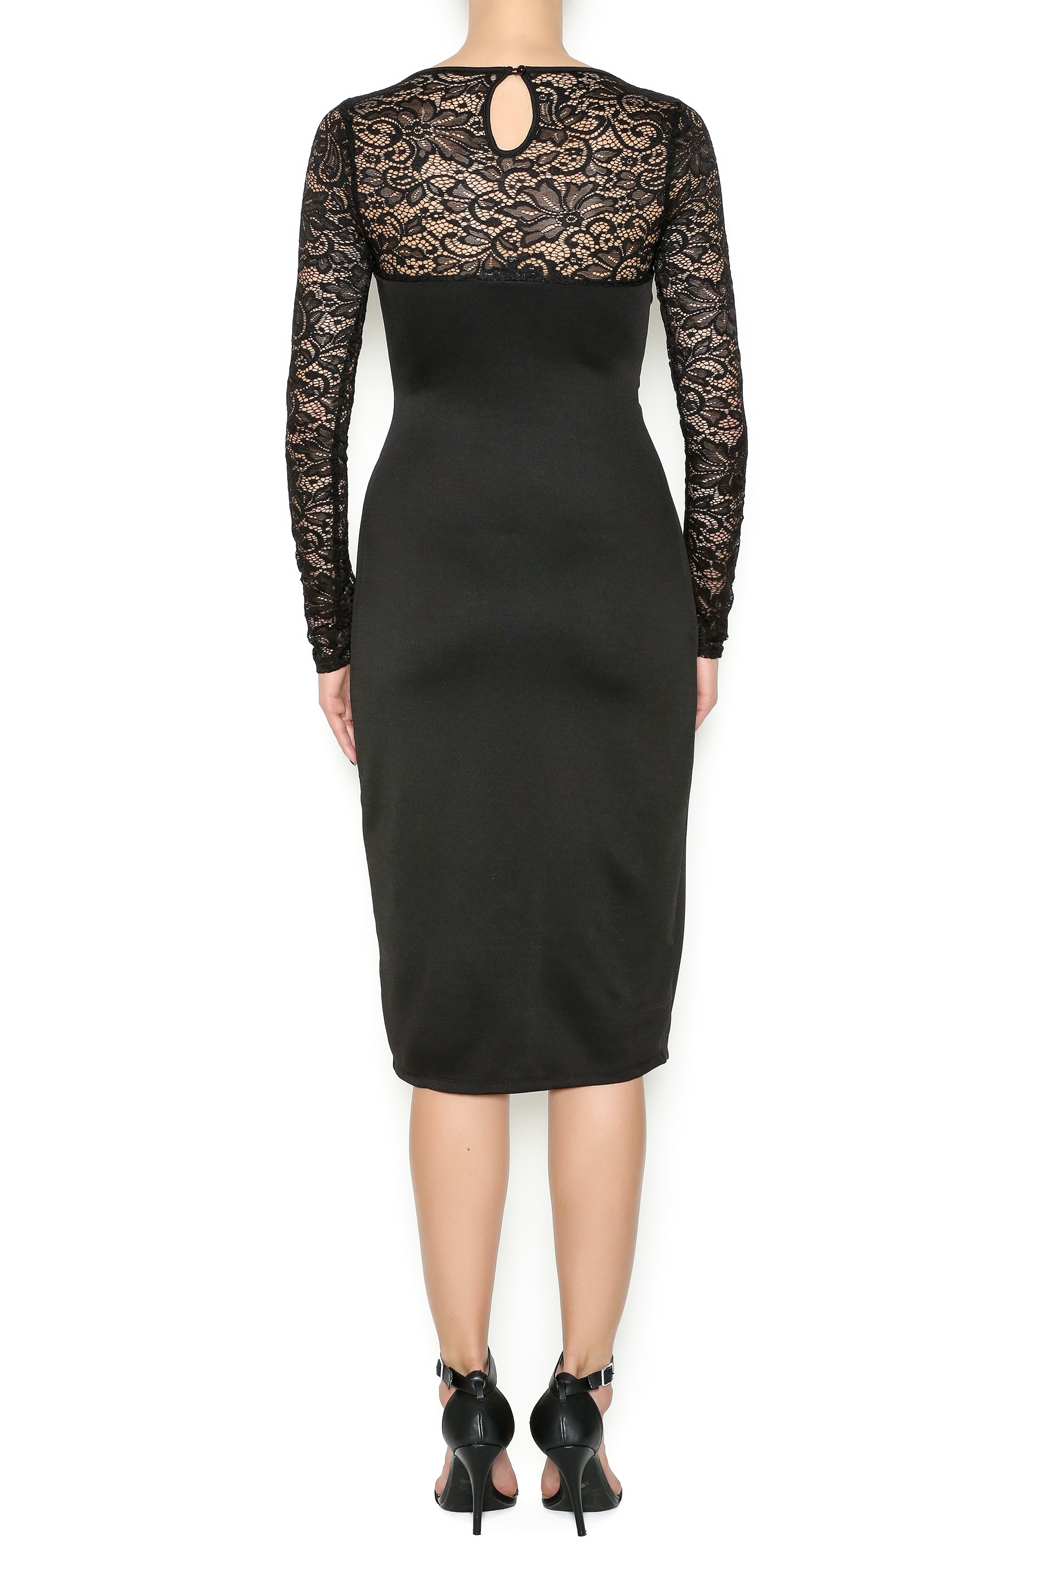 Symphoney Neck Lace Black Dress - Back Cropped Image